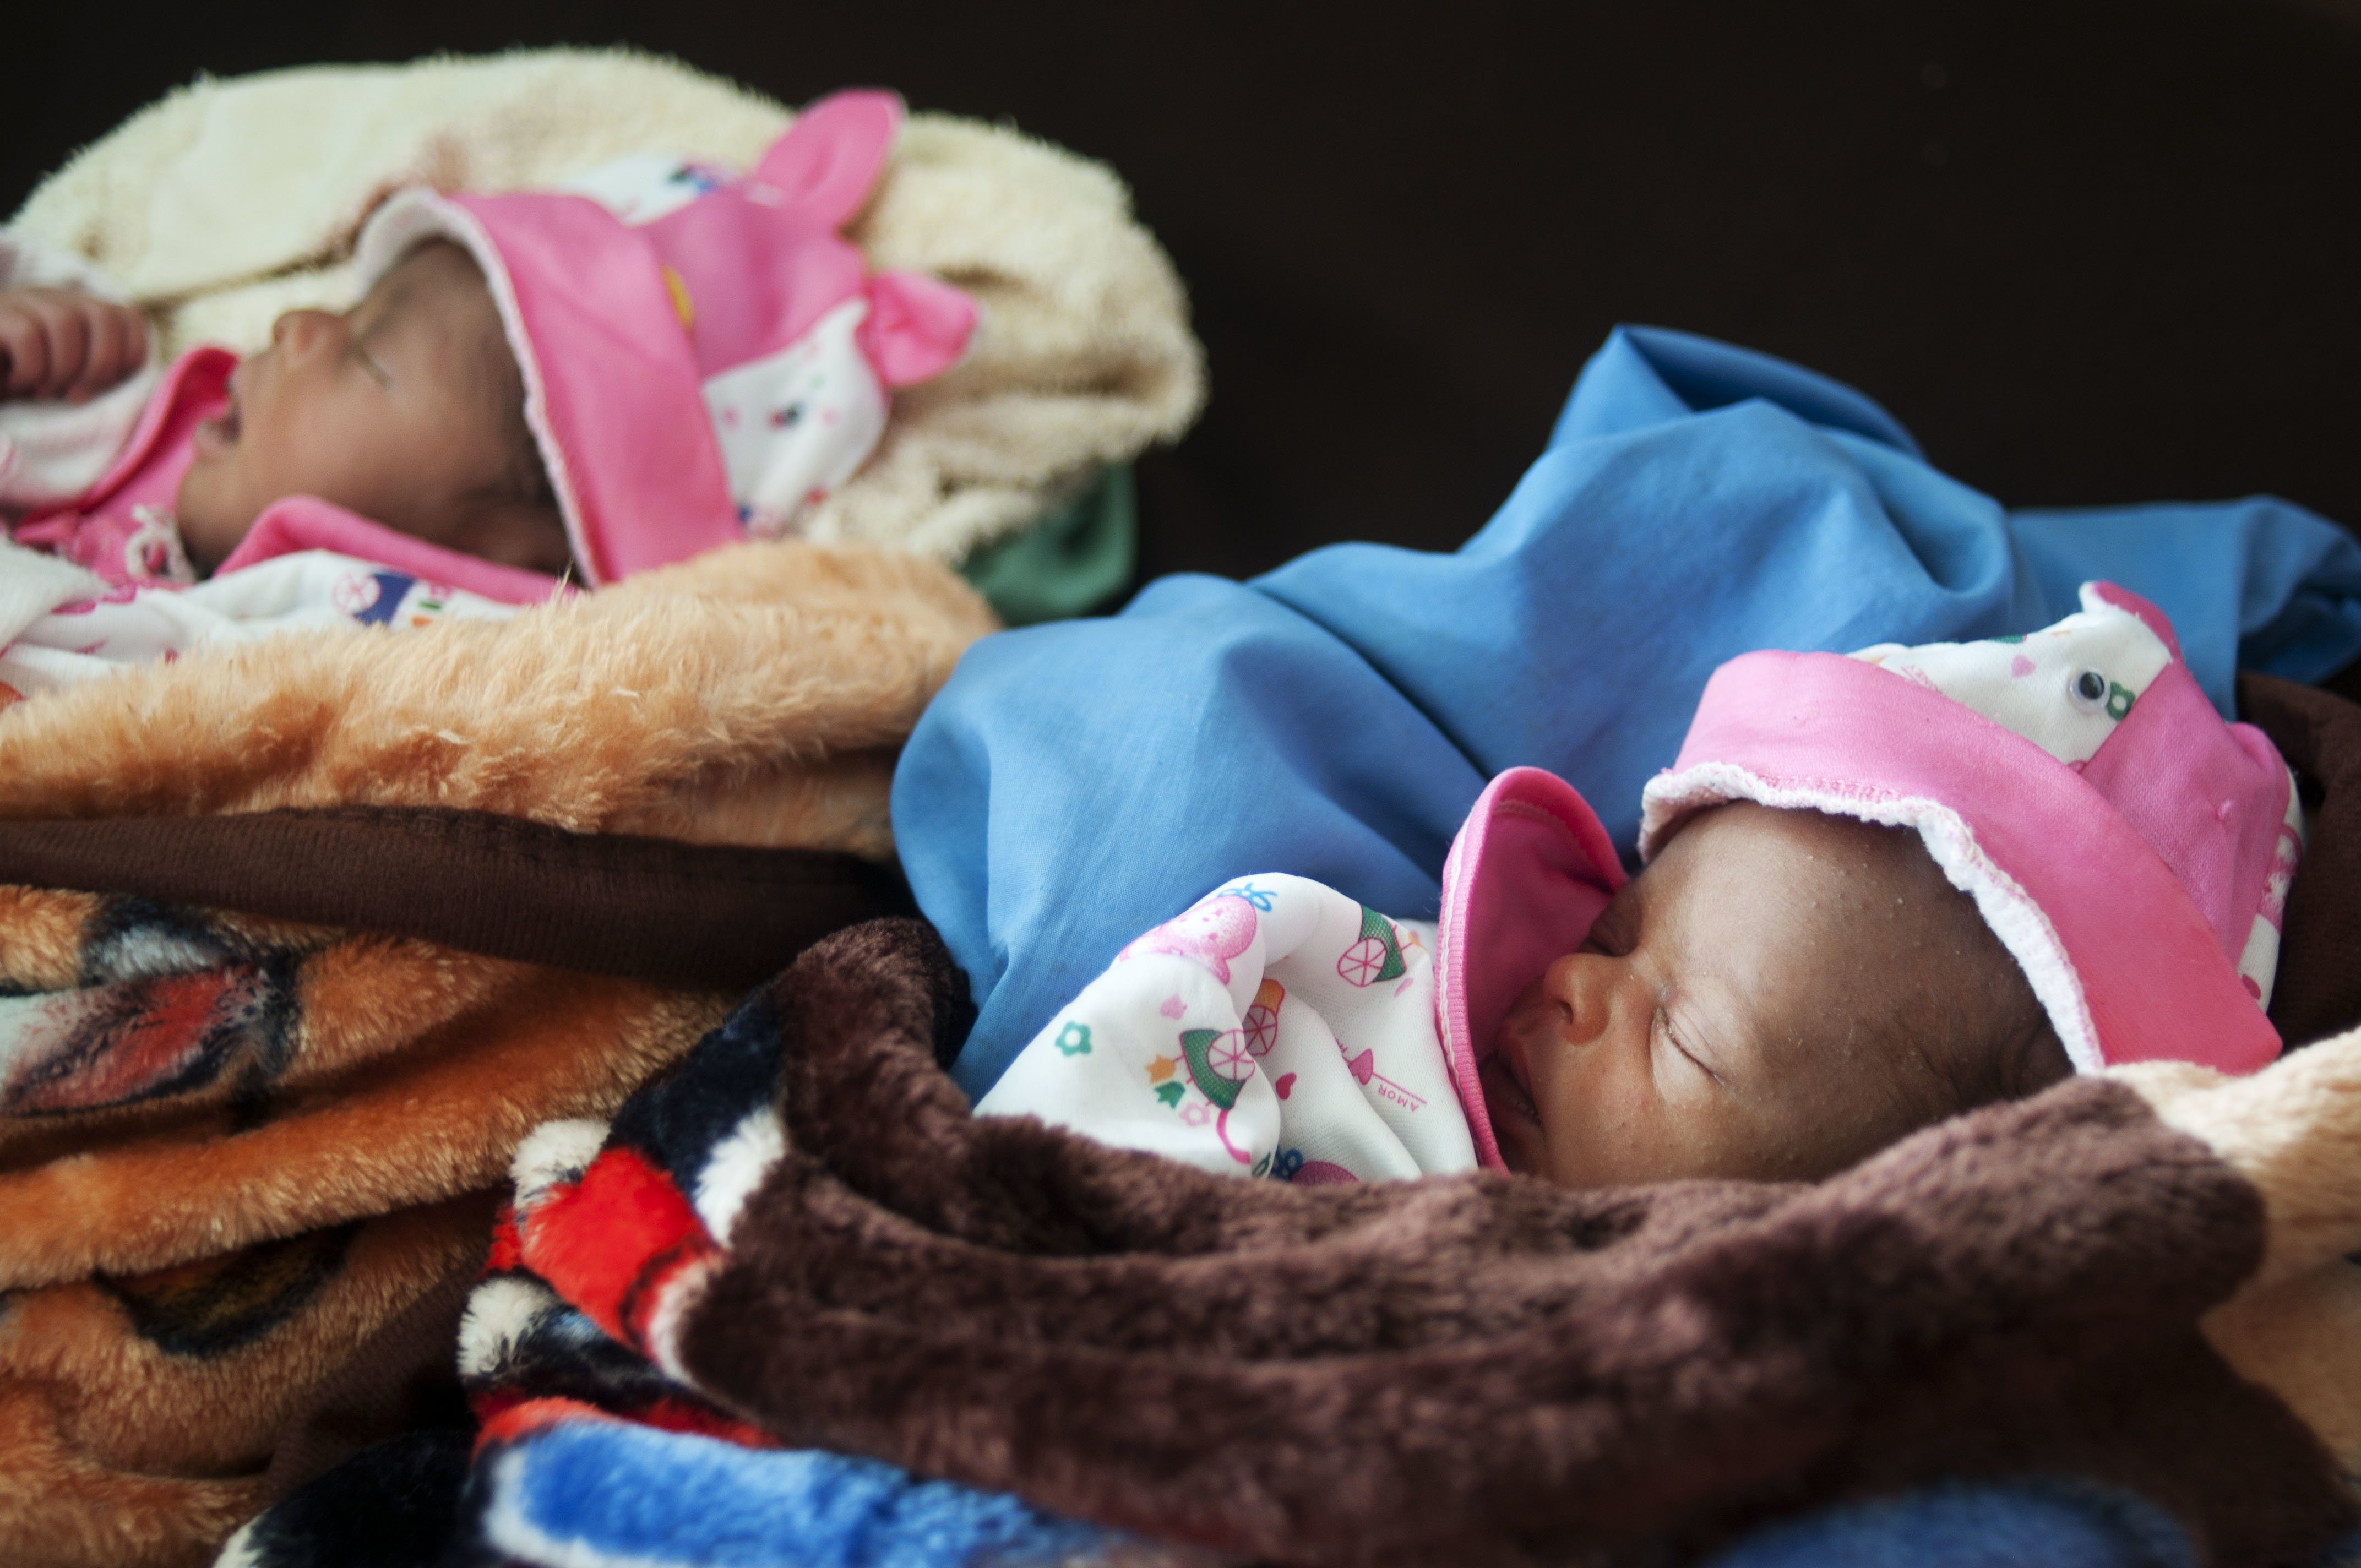 New born twins Marina and Nina, Central African Republic. August 2012| Photo: Getty Images